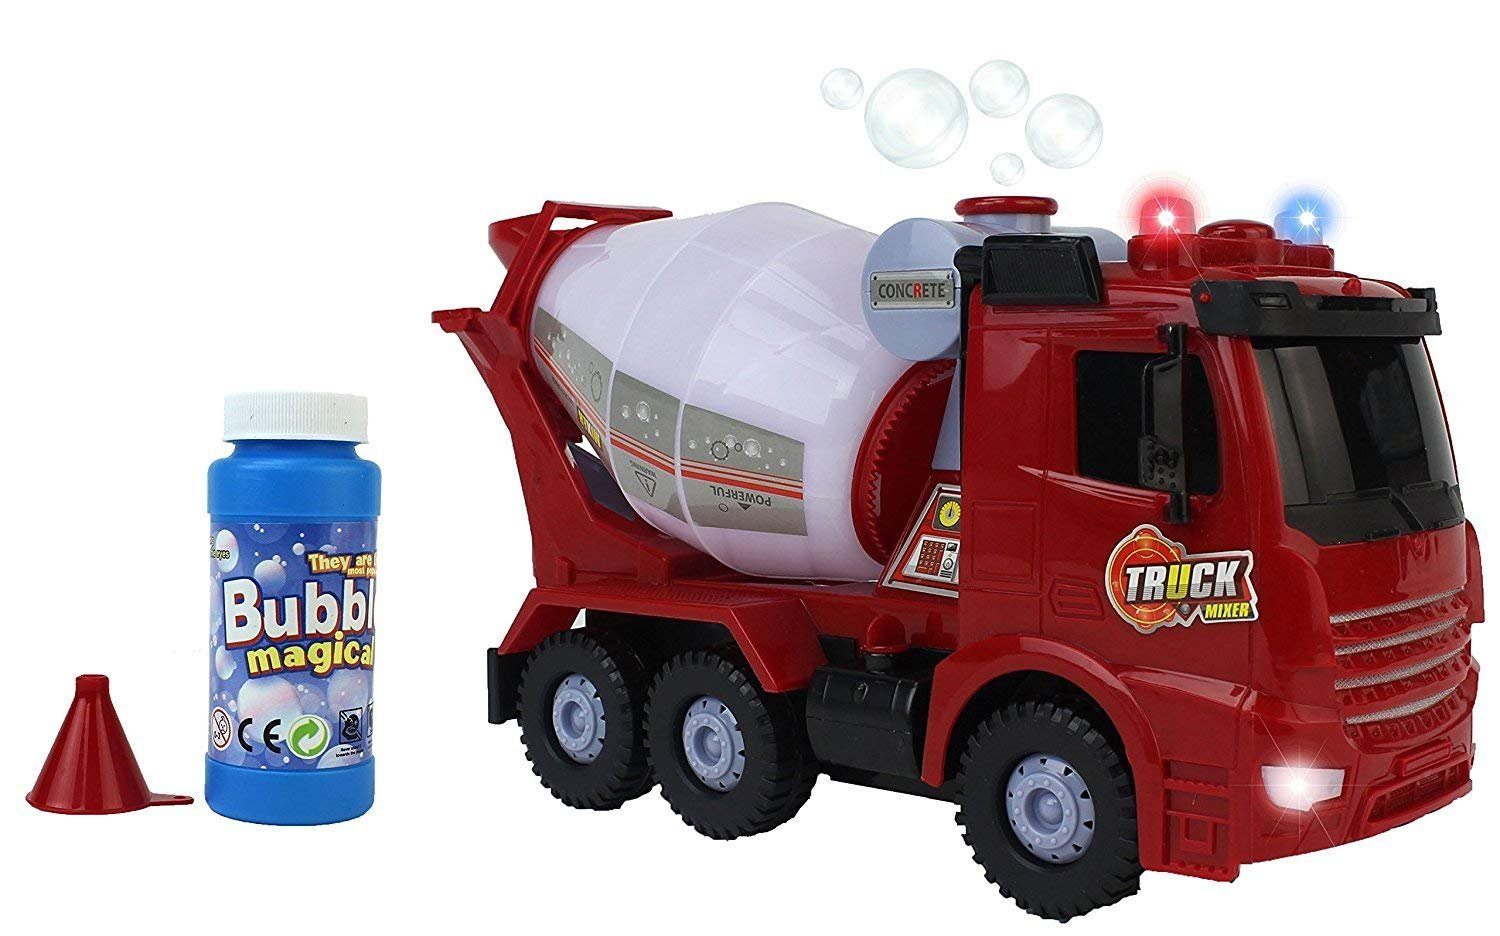 AJ Toys & Games Happy Bubbles Bump & Go Bubble Blowing Battery Operated Toy Cement Mixer Truck w/ Lights, Sounds, Funnel, & Bubbles